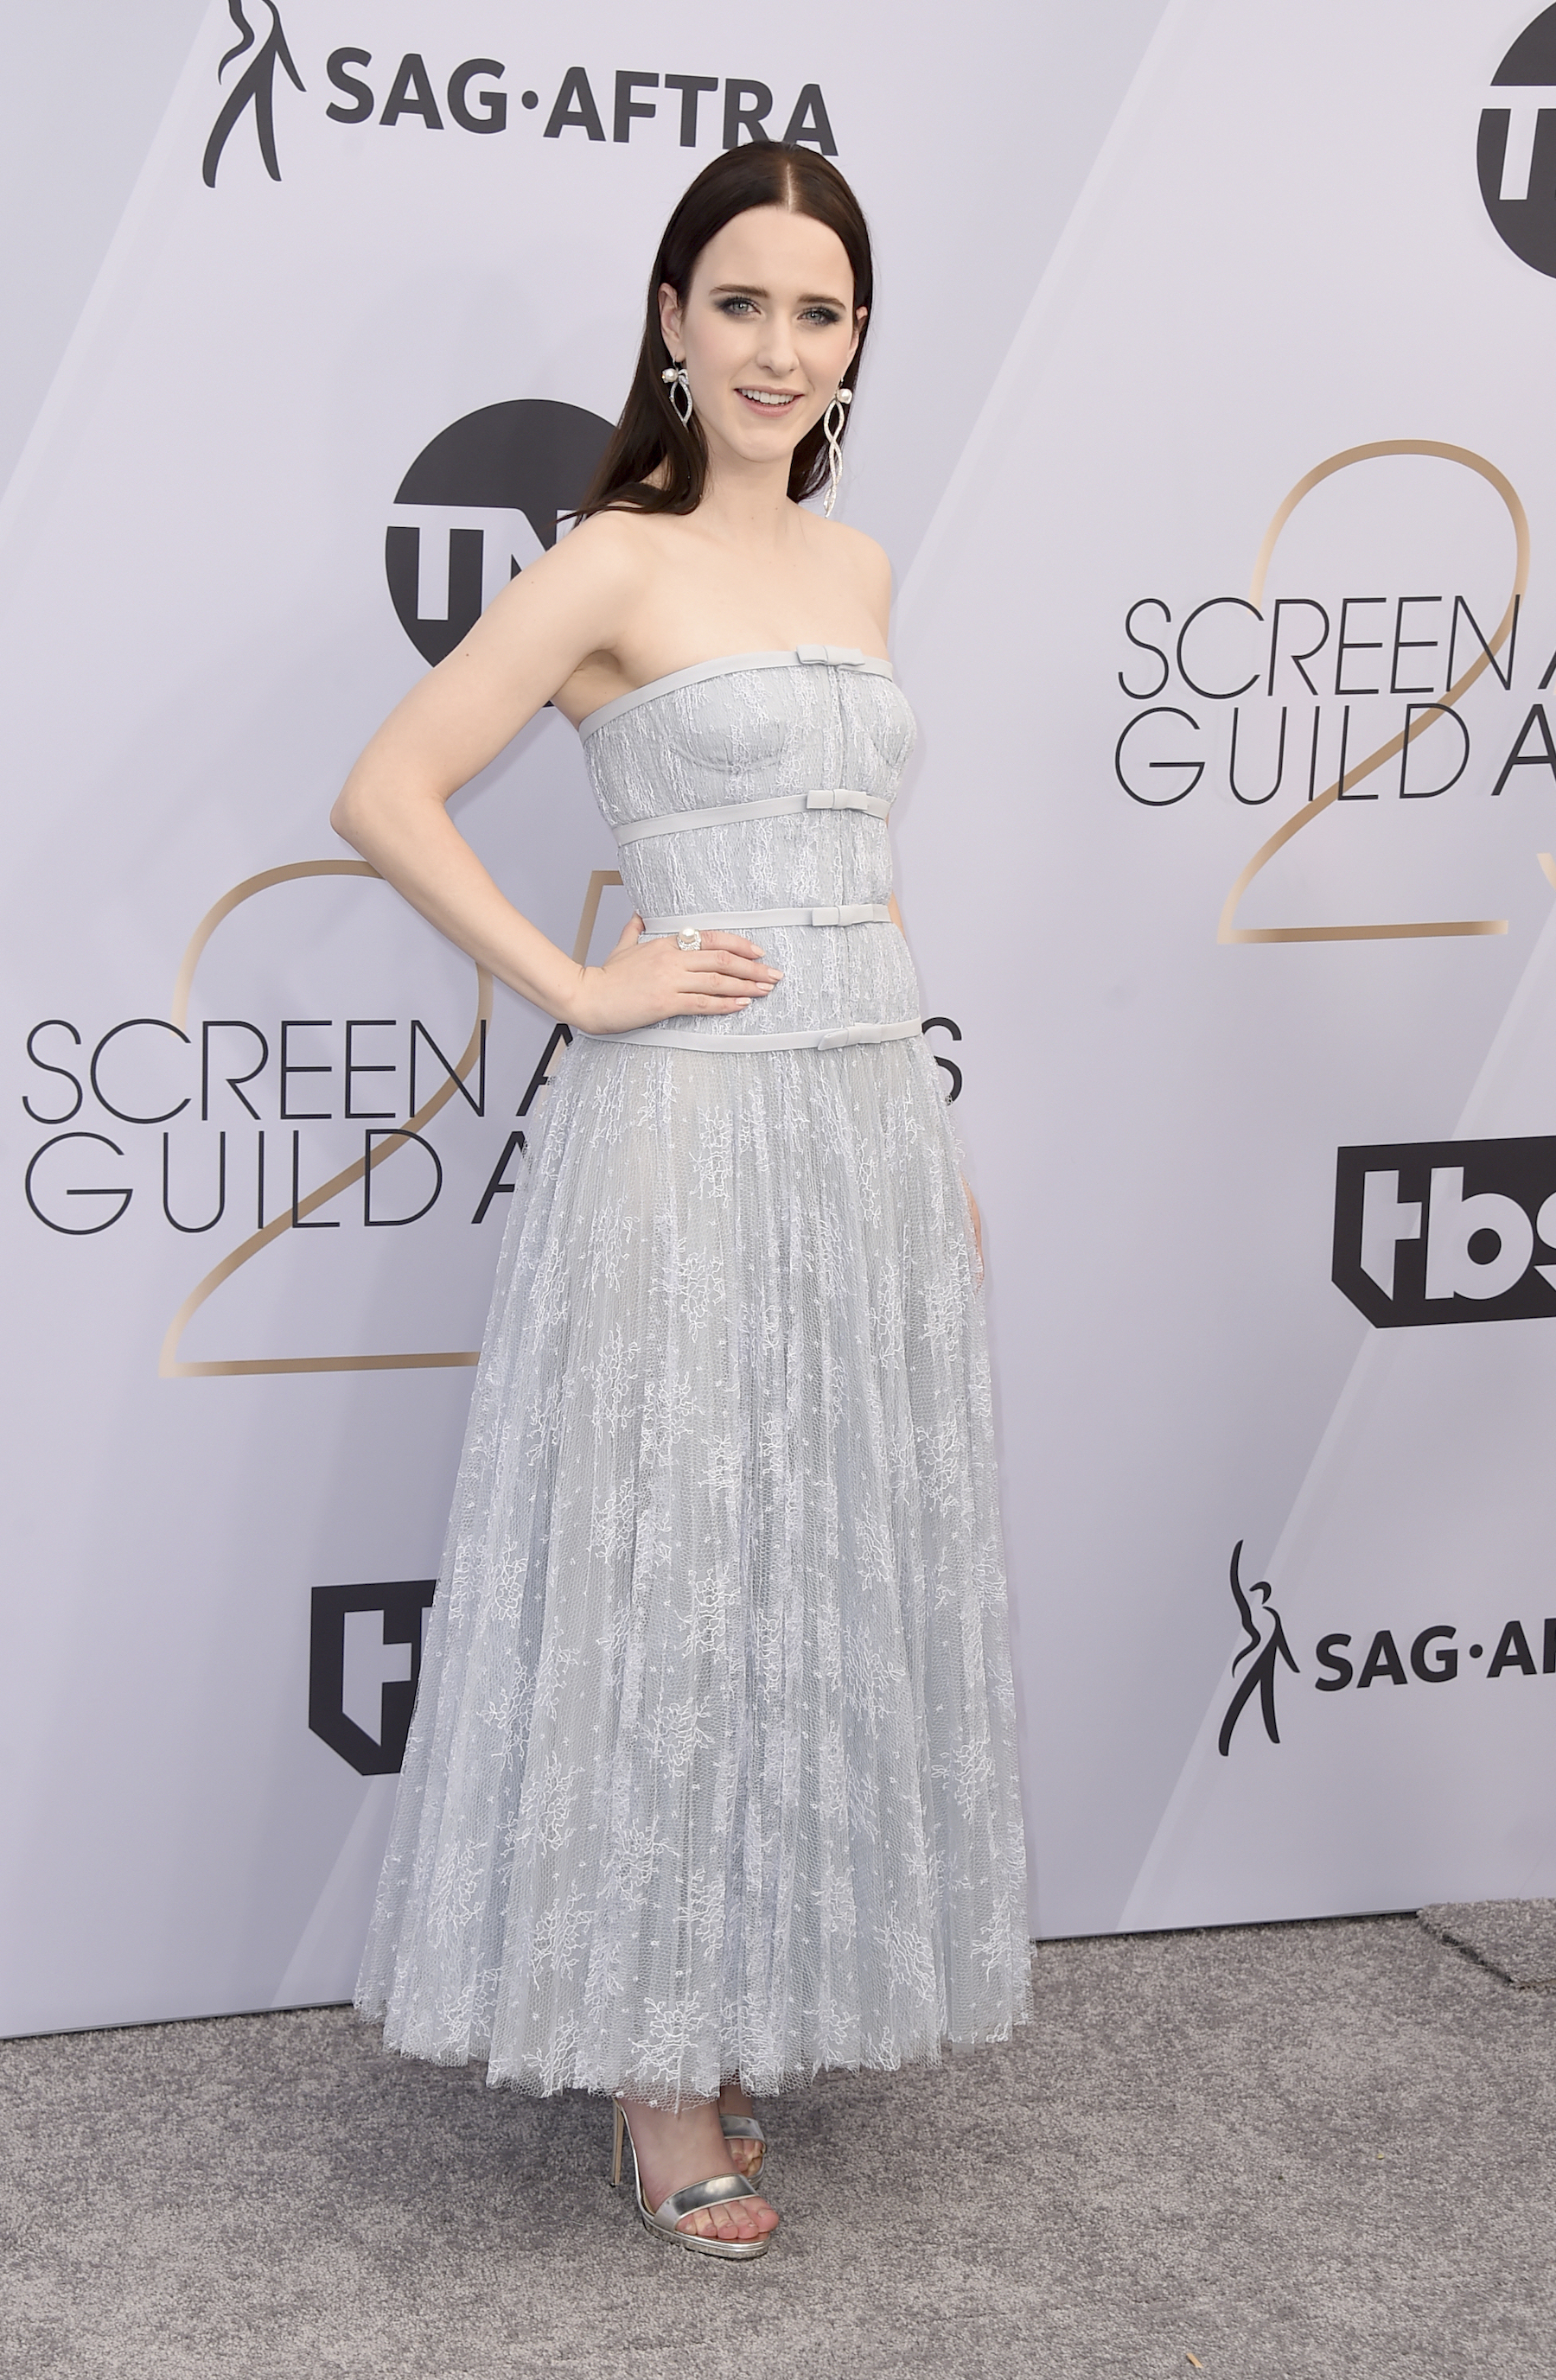 <div class='meta'><div class='origin-logo' data-origin='AP'></div><span class='caption-text' data-credit='Jordan Strauss/Invision/AP'>Rachel Brosnahan arrives at the 25th annual Screen Actors Guild Awards at the Shrine Auditorium & Expo Hall on Sunday, Jan. 27, 2019, in Los Angeles.</span></div>